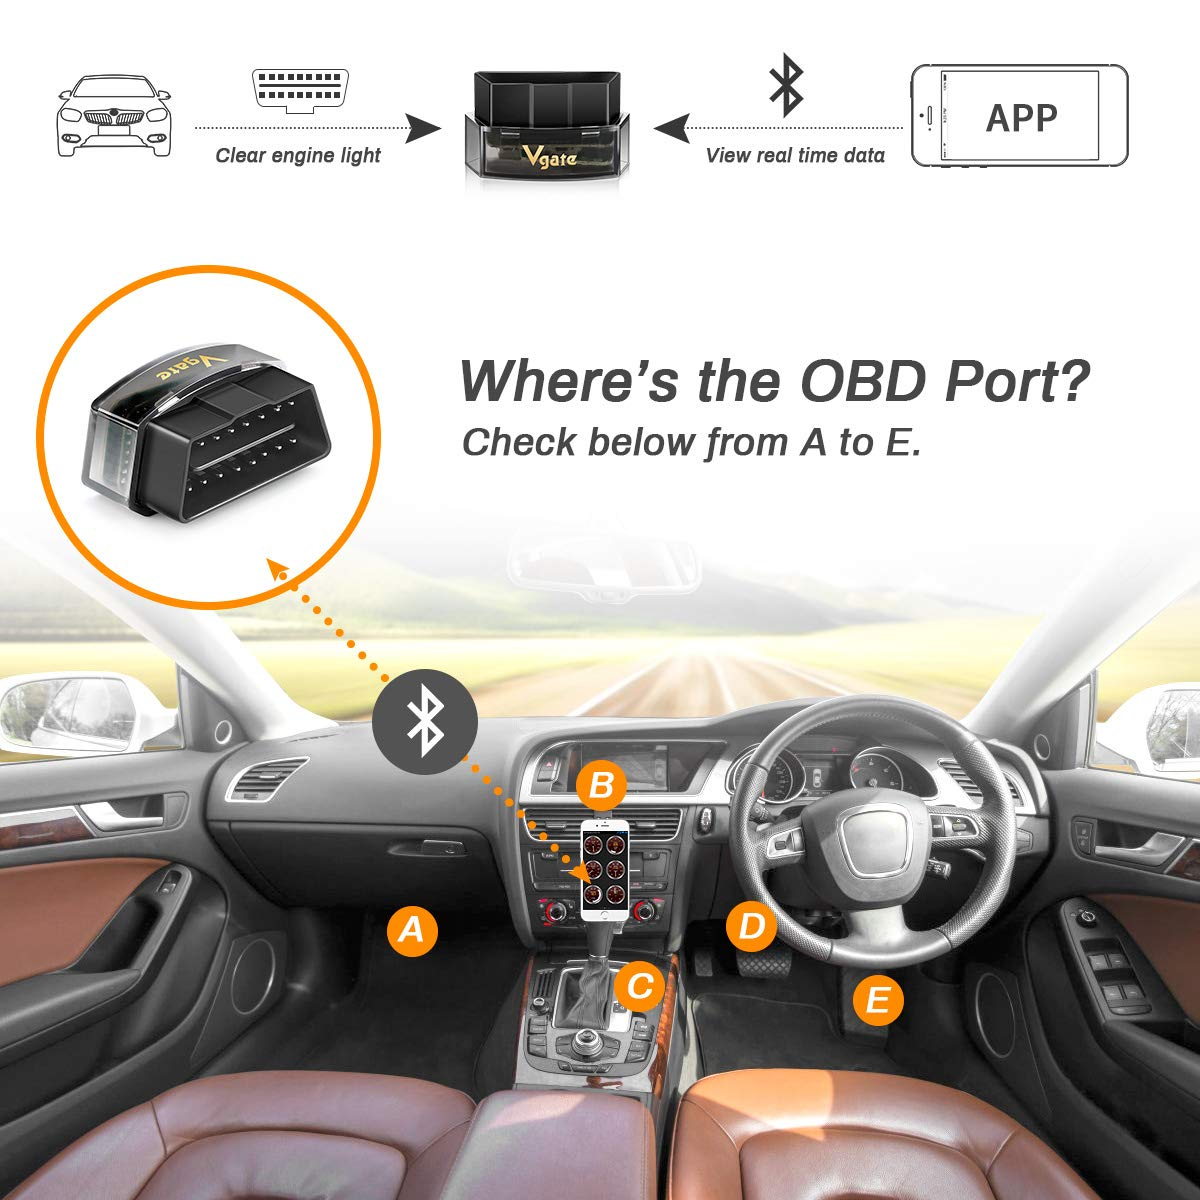 Powcan OBD2 Scanner Bluetooth Car OBD 2 Code Reader Scan Tool OBD II Bluetooth 4.0 Auto Diagnostic Scanner Tool for iPhone iOS Android iPad Check Engine Light for Year 1996 and Newer Vehicles Automotive OBD-II Engine System Diagnostic Tools